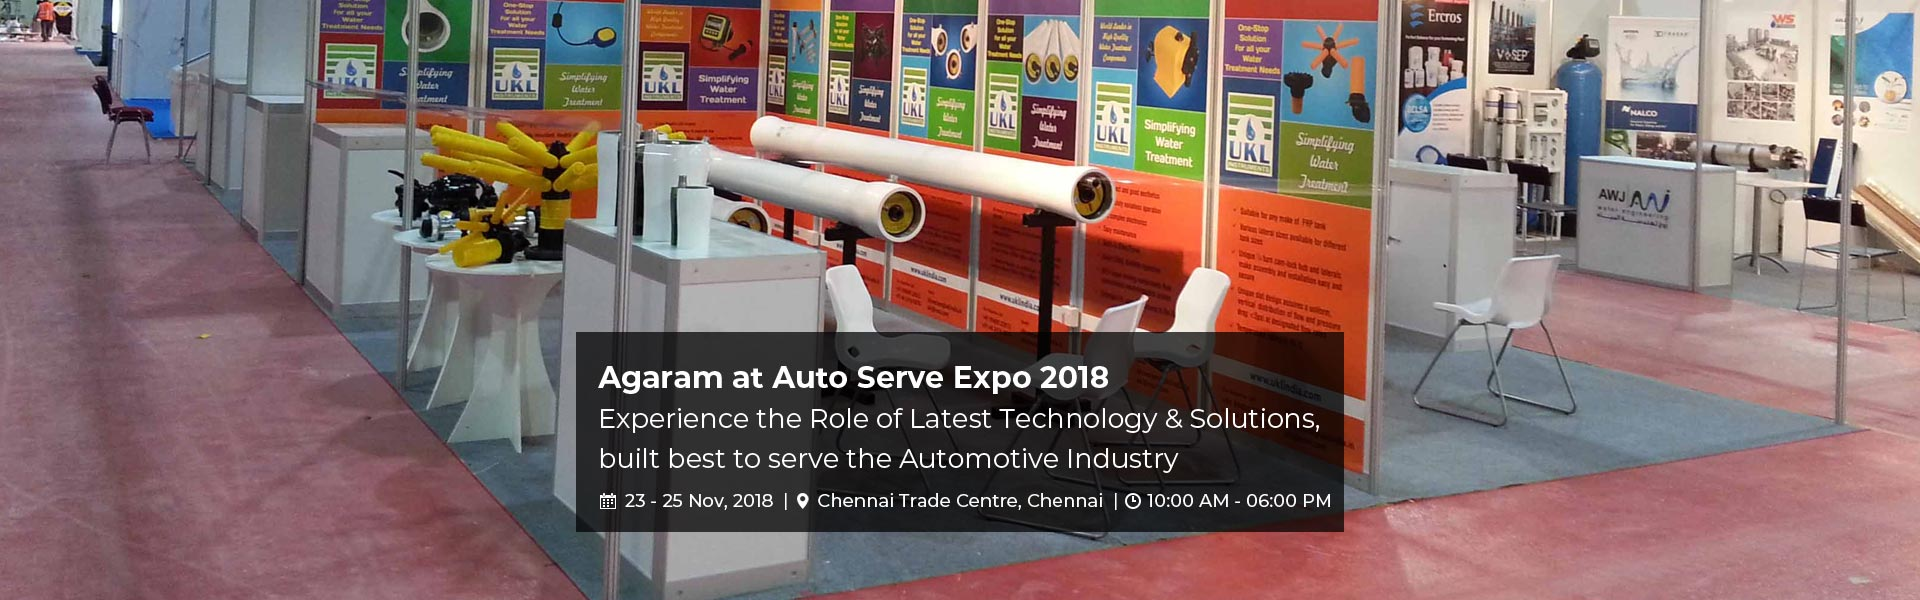 Agaram at Auto Serve Expo 2018